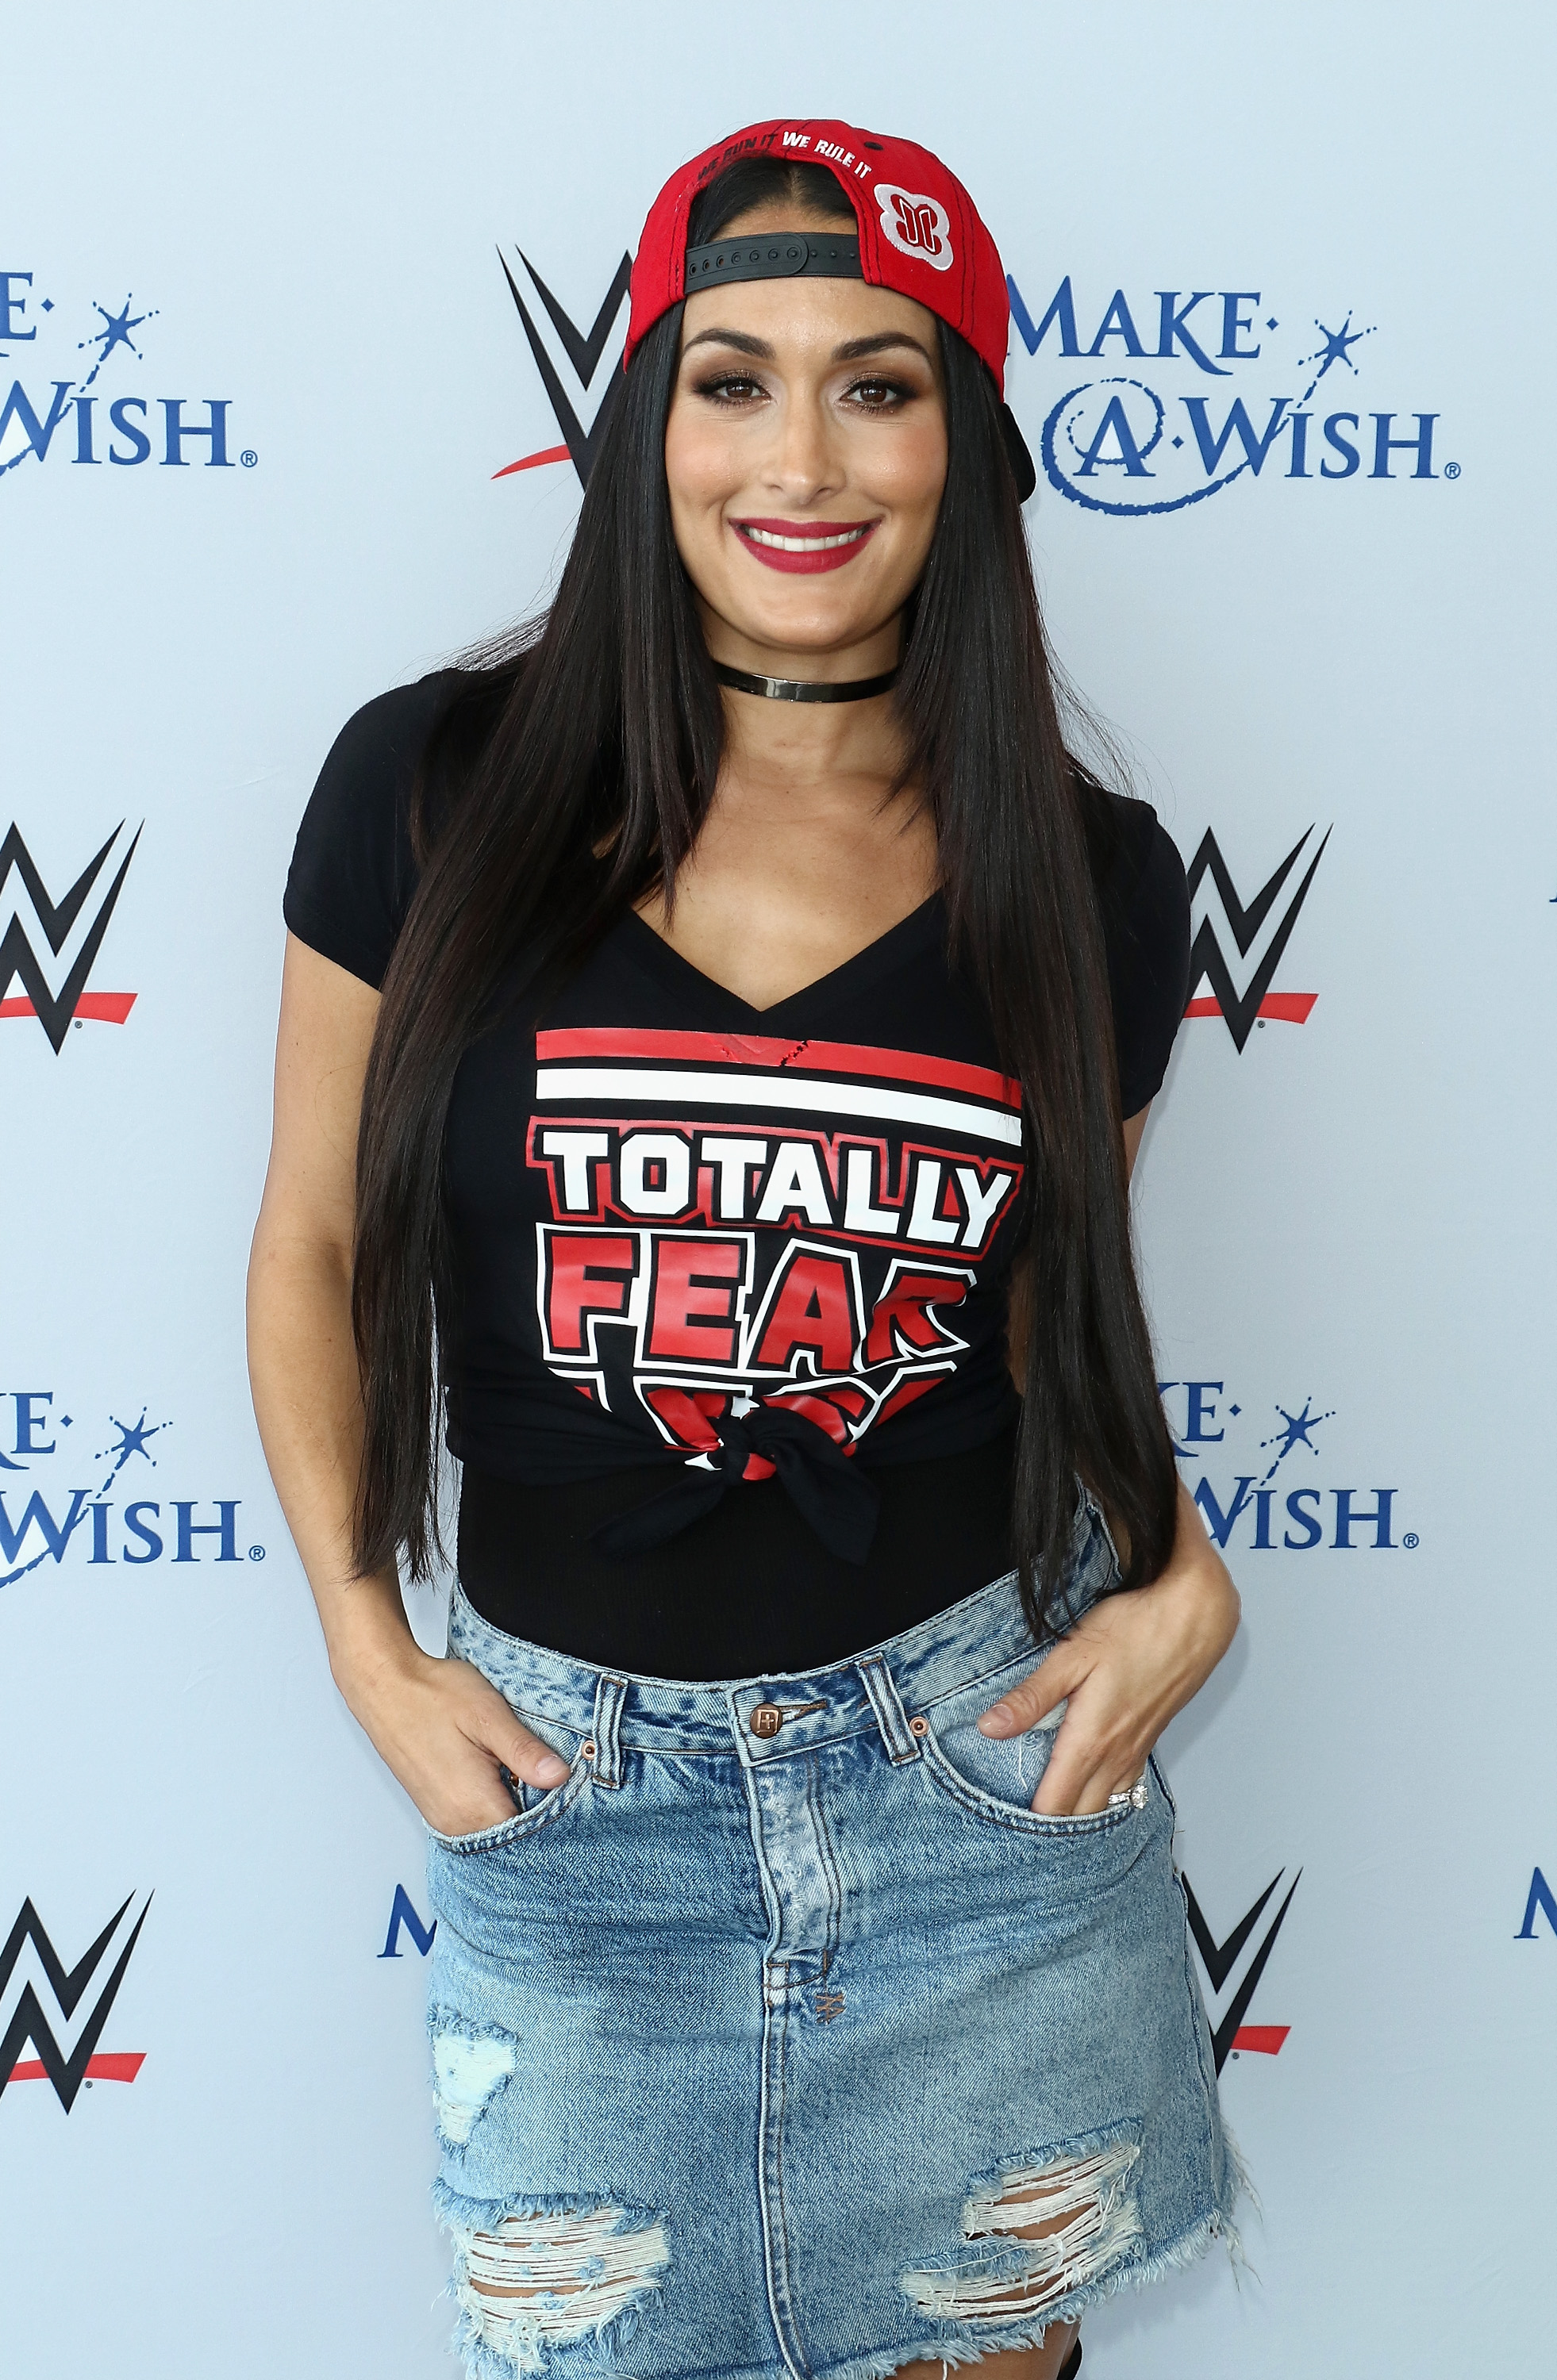 Nikki Bella's Ex-Husband: Find out About Her First Marriage!